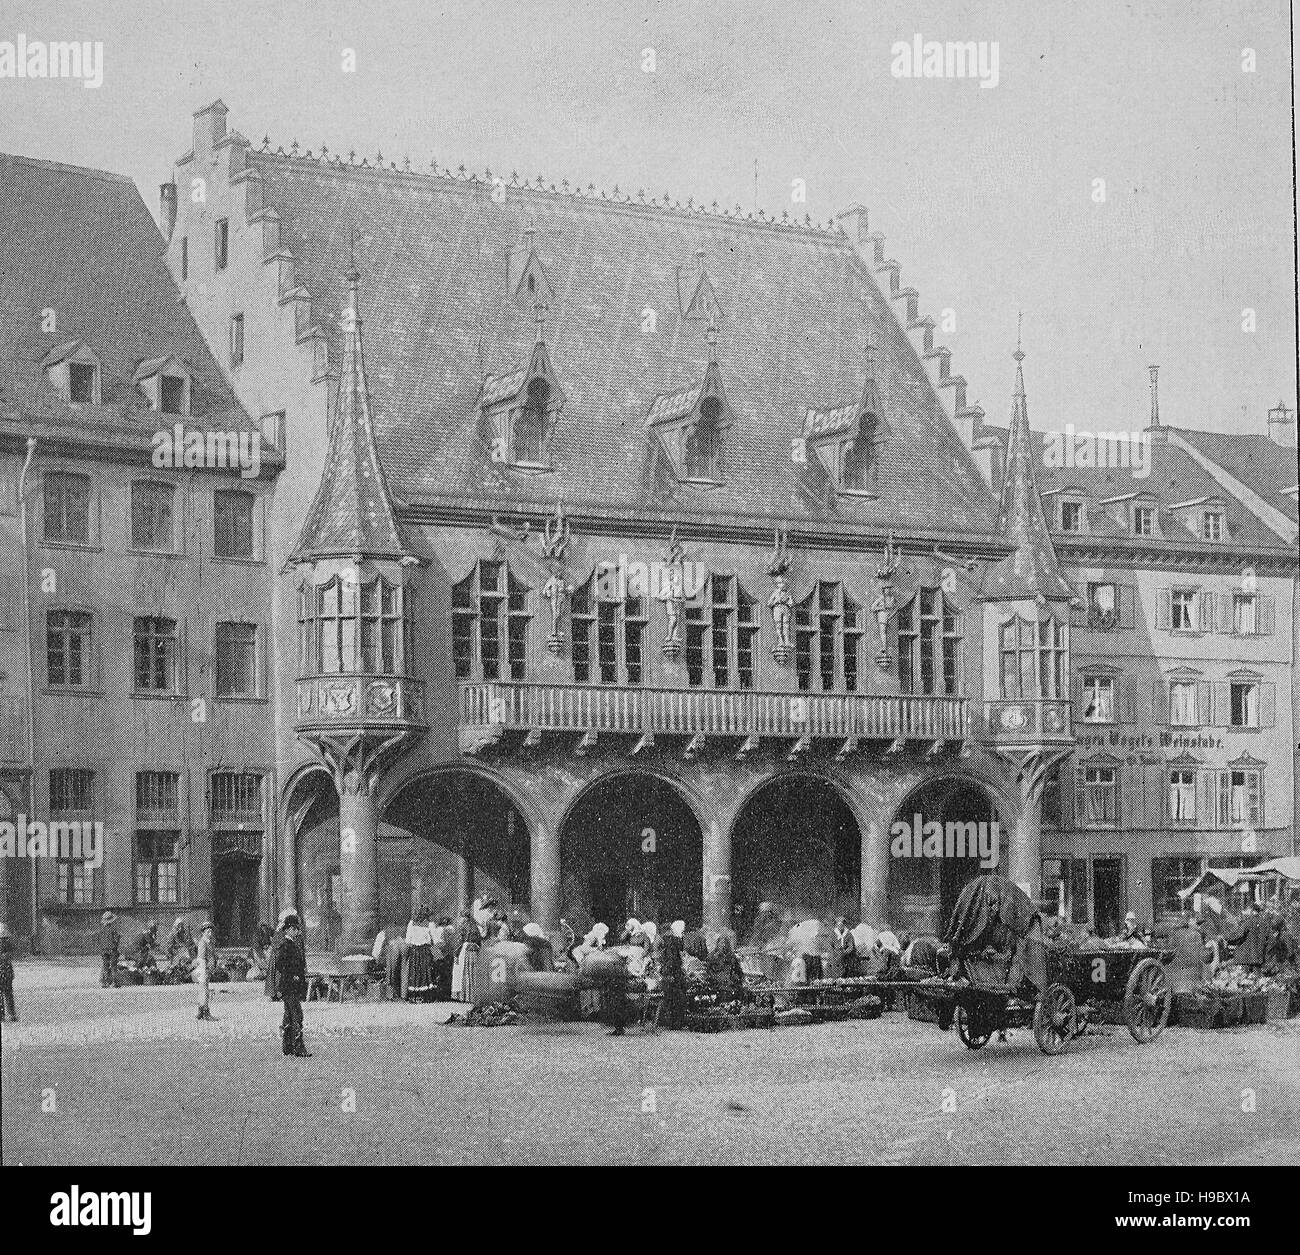 Department store in Freiburg, in the year 1500, Middle Ages, Germany, historical illustration - Stock Image